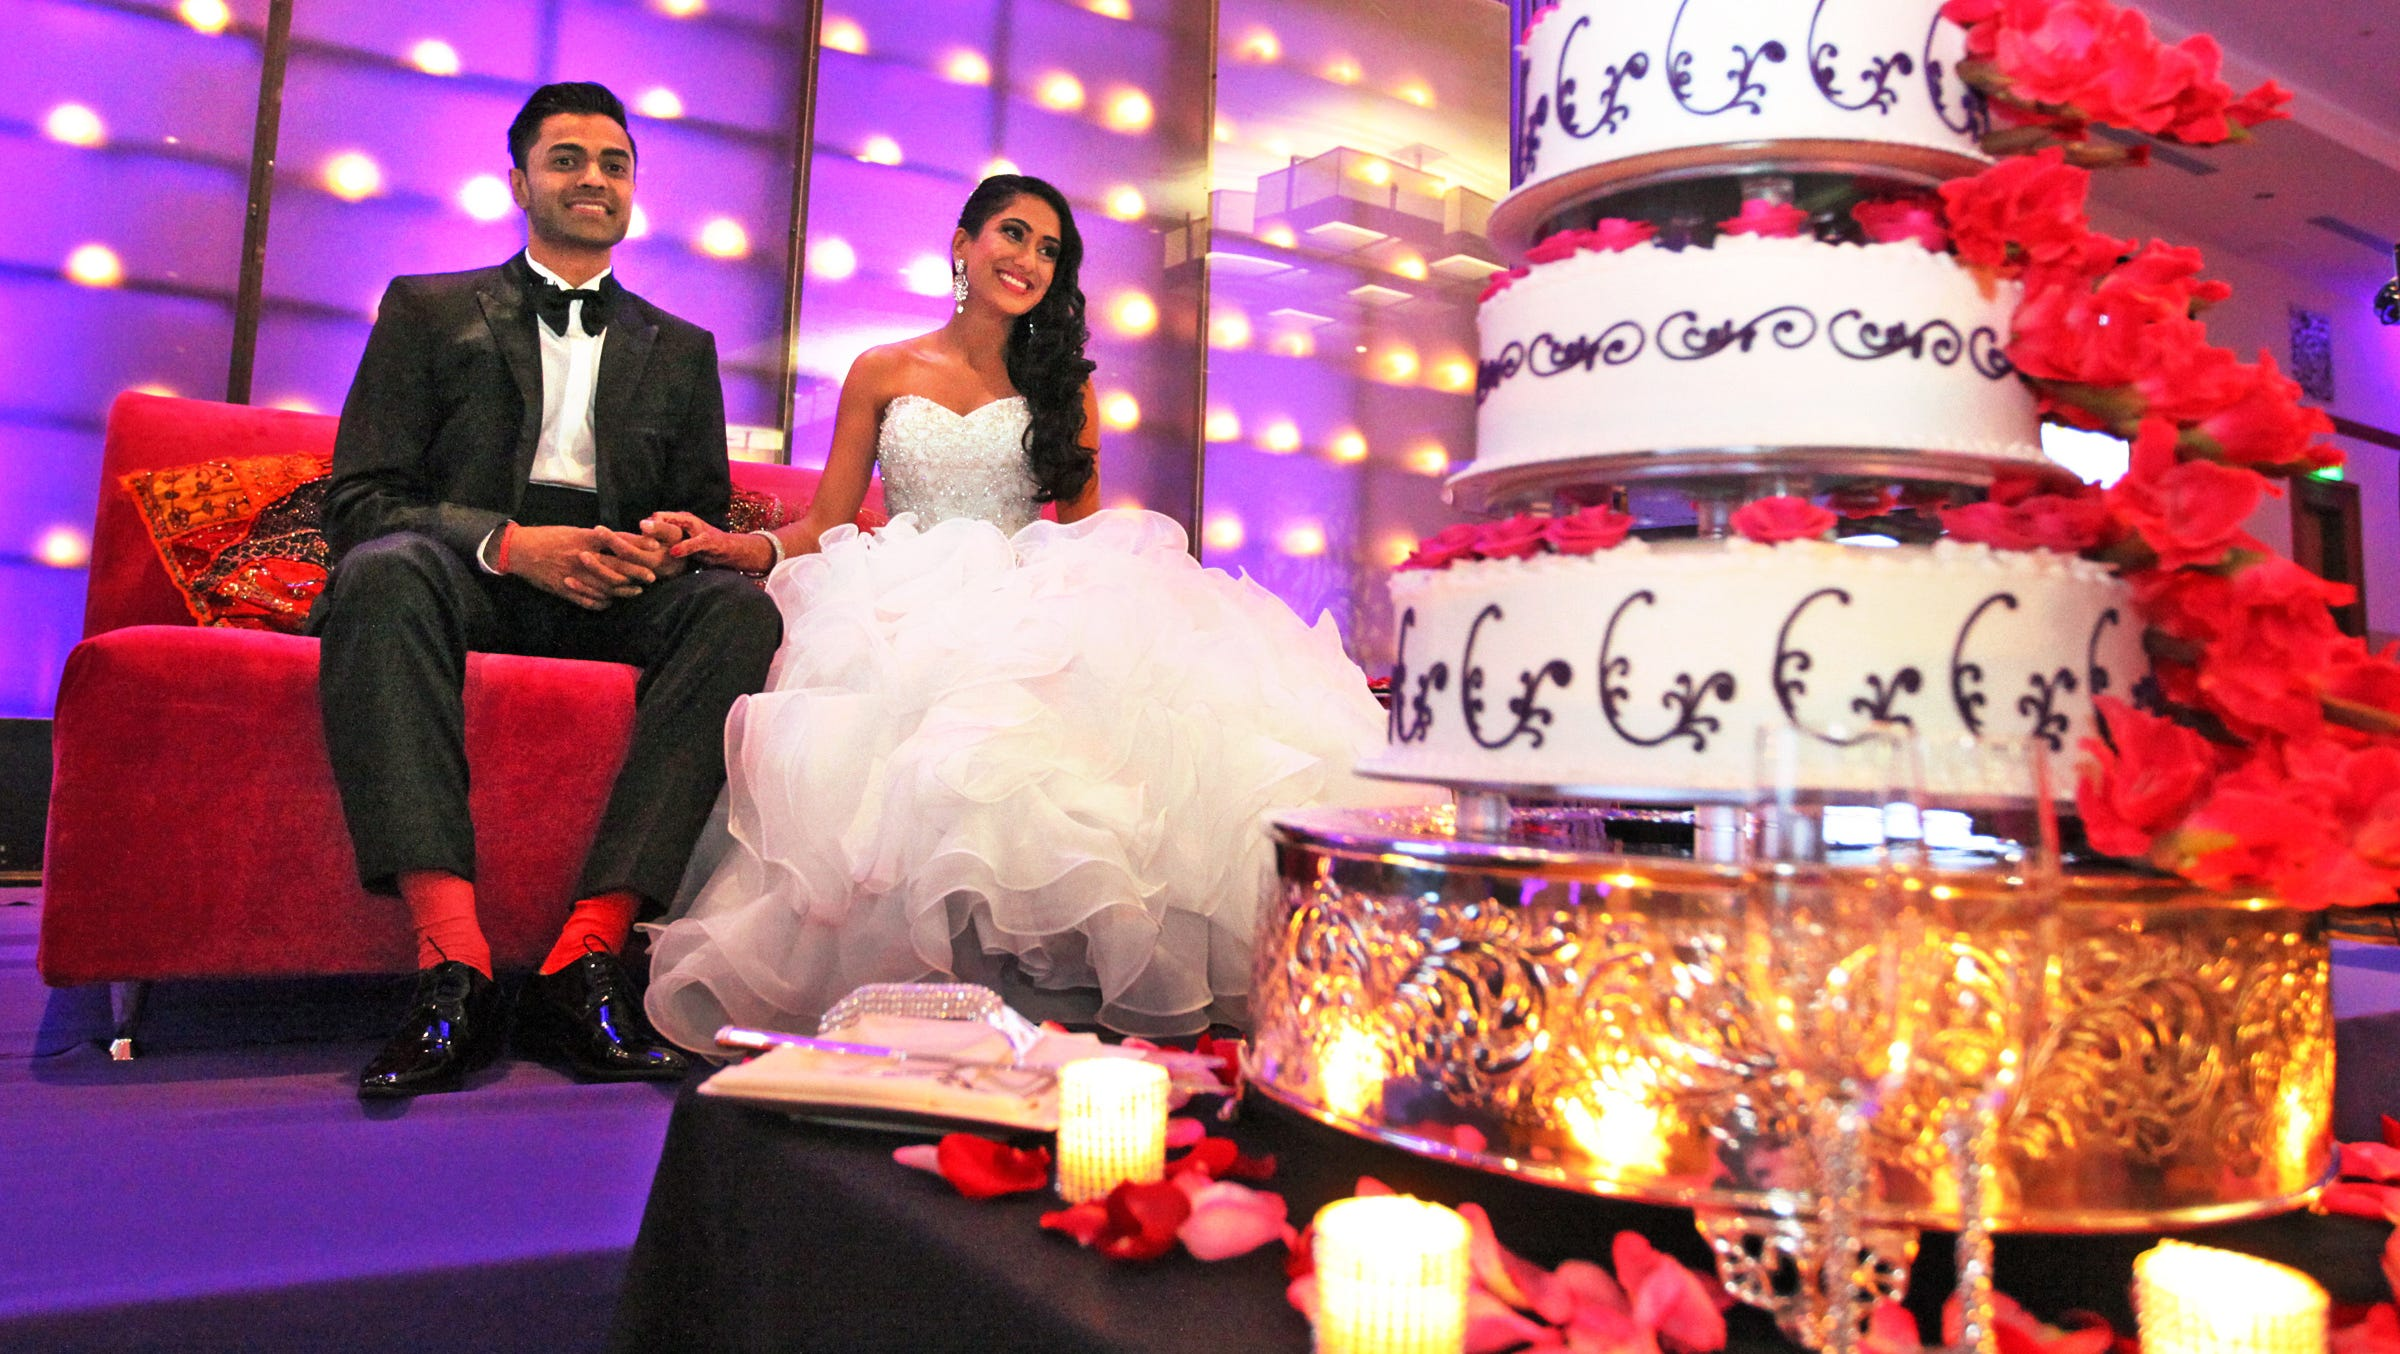 Indian Wedding Extravaganza Blends Cultures Old And New